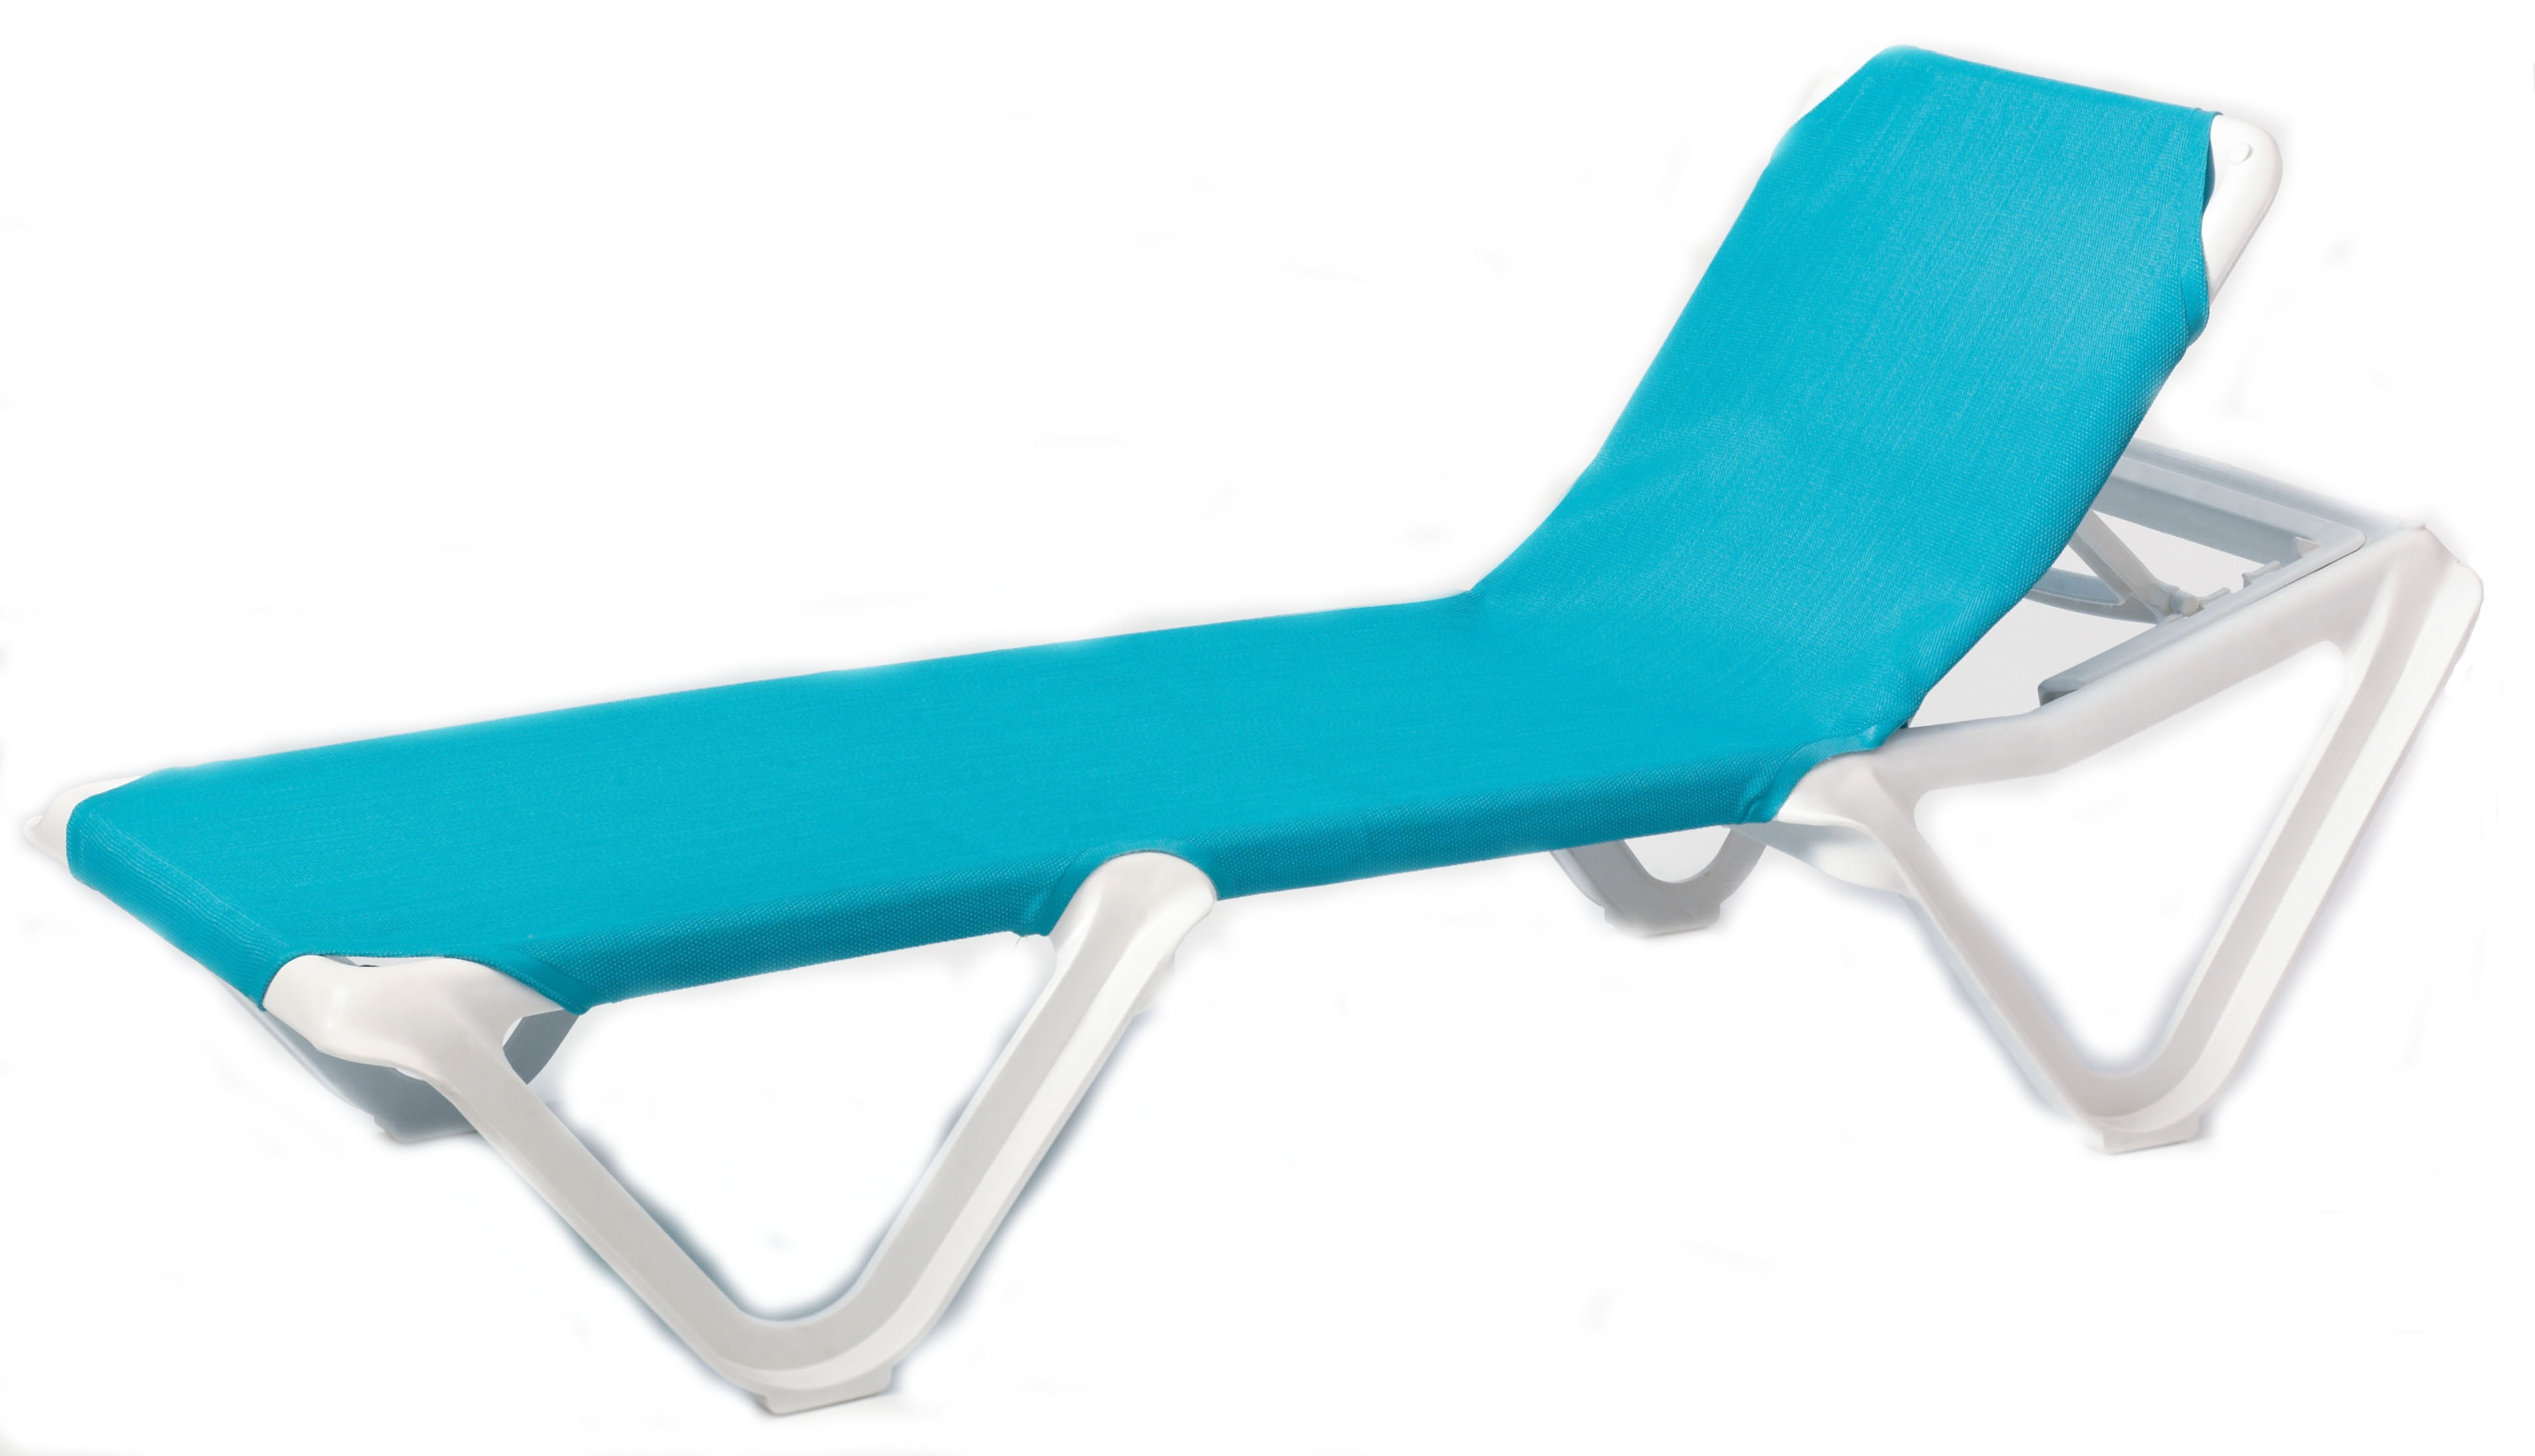 Grosfillex Nautical Adjustable Resin Sling Chaise Lounge Chair W/o Intended For 2018 Chaise Lounge Chairs Without Arms (View 13 of 15)